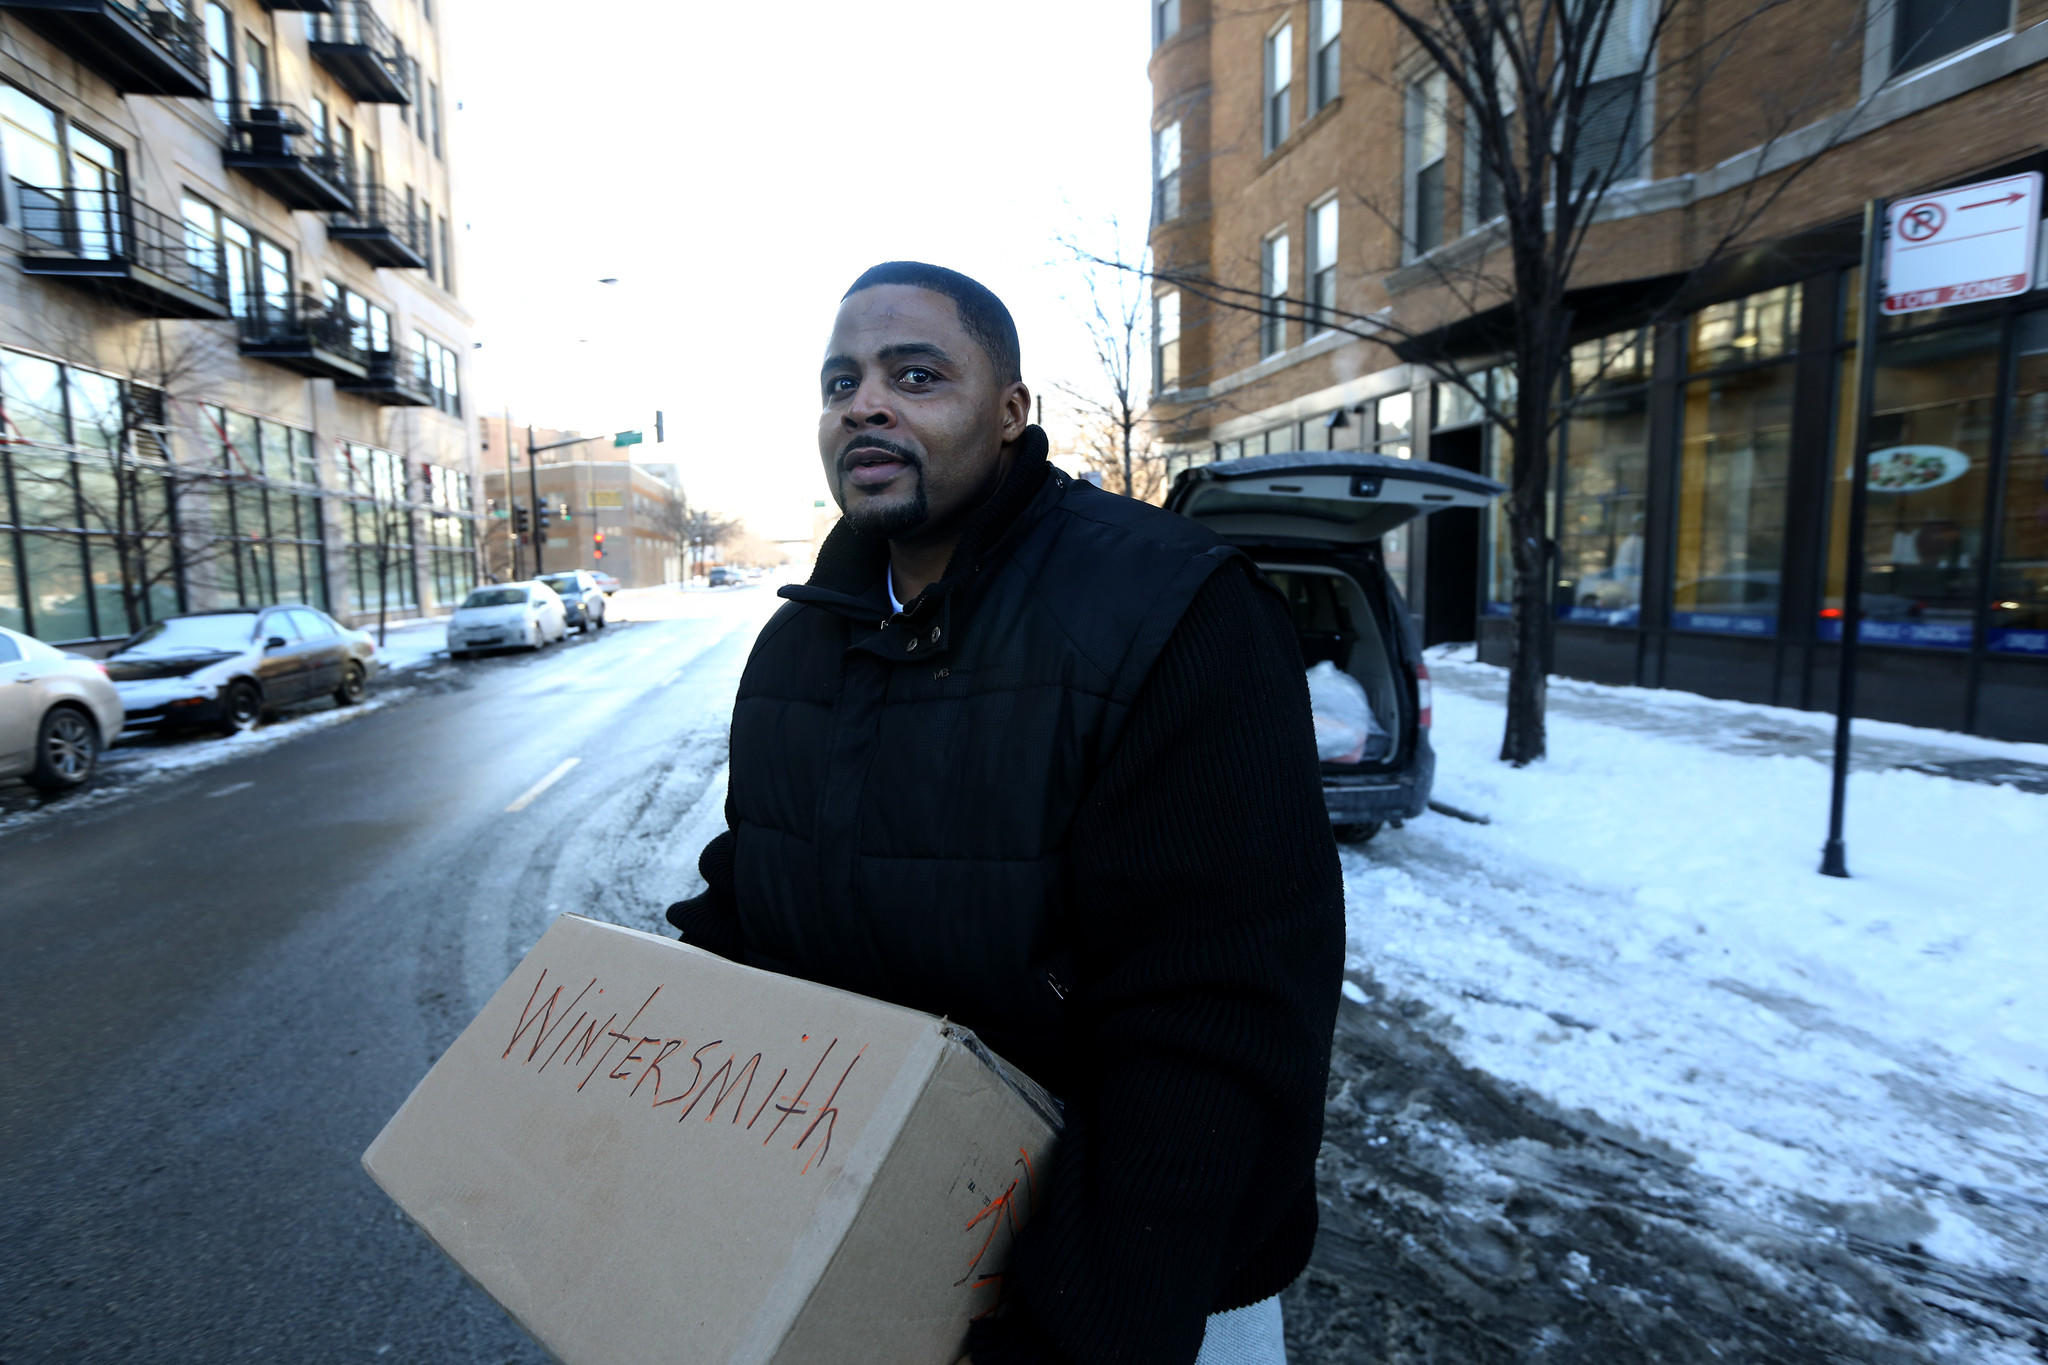 On the day he was released from prison, Reynolds Wintersmith carries a box of donated clothes on Tuesday Jan. 21, 2014 into the halfway house in Chicago where he will live for the next couple months.